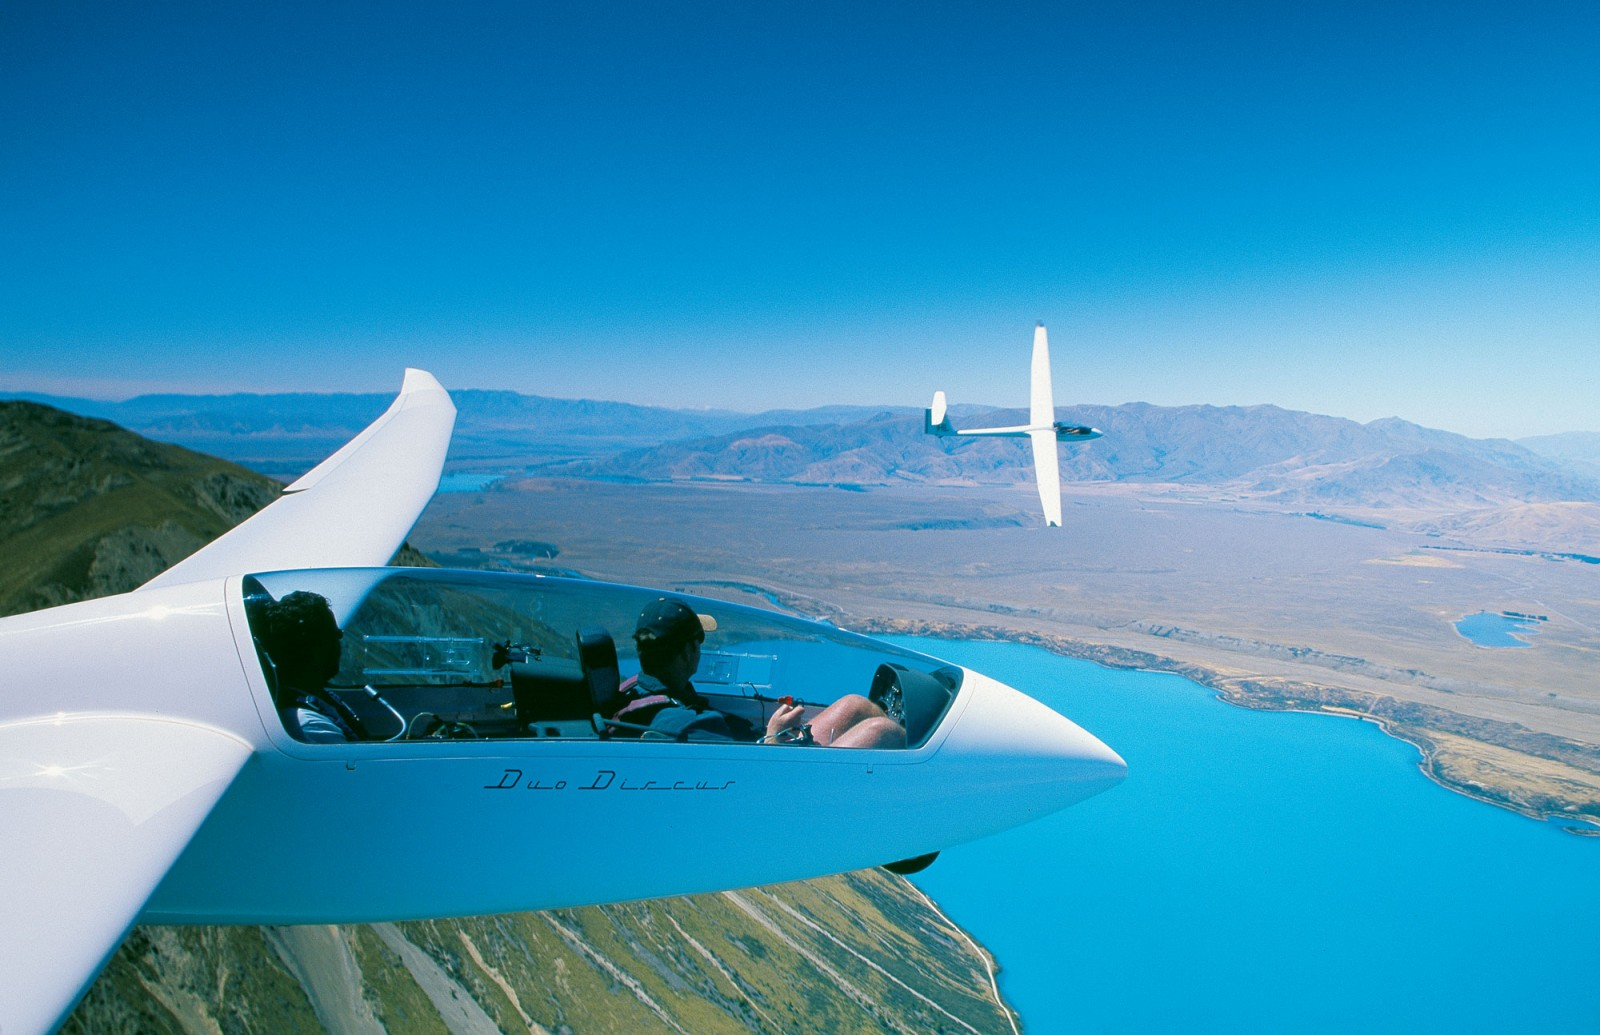 """You have control,"" intones Luke Roberts, instructor, from the back seat (right). In front, author Marty Taylor enjoys a spot of Mackenzie Country magic ashe pilots the Duo Discus over the slopes above Lake Ohau. Beyond the accompanying glider the Benmore Range bestrides the horizon, falling towards Lake Ruataniwha, at Twizel, under the Duo's port wing."